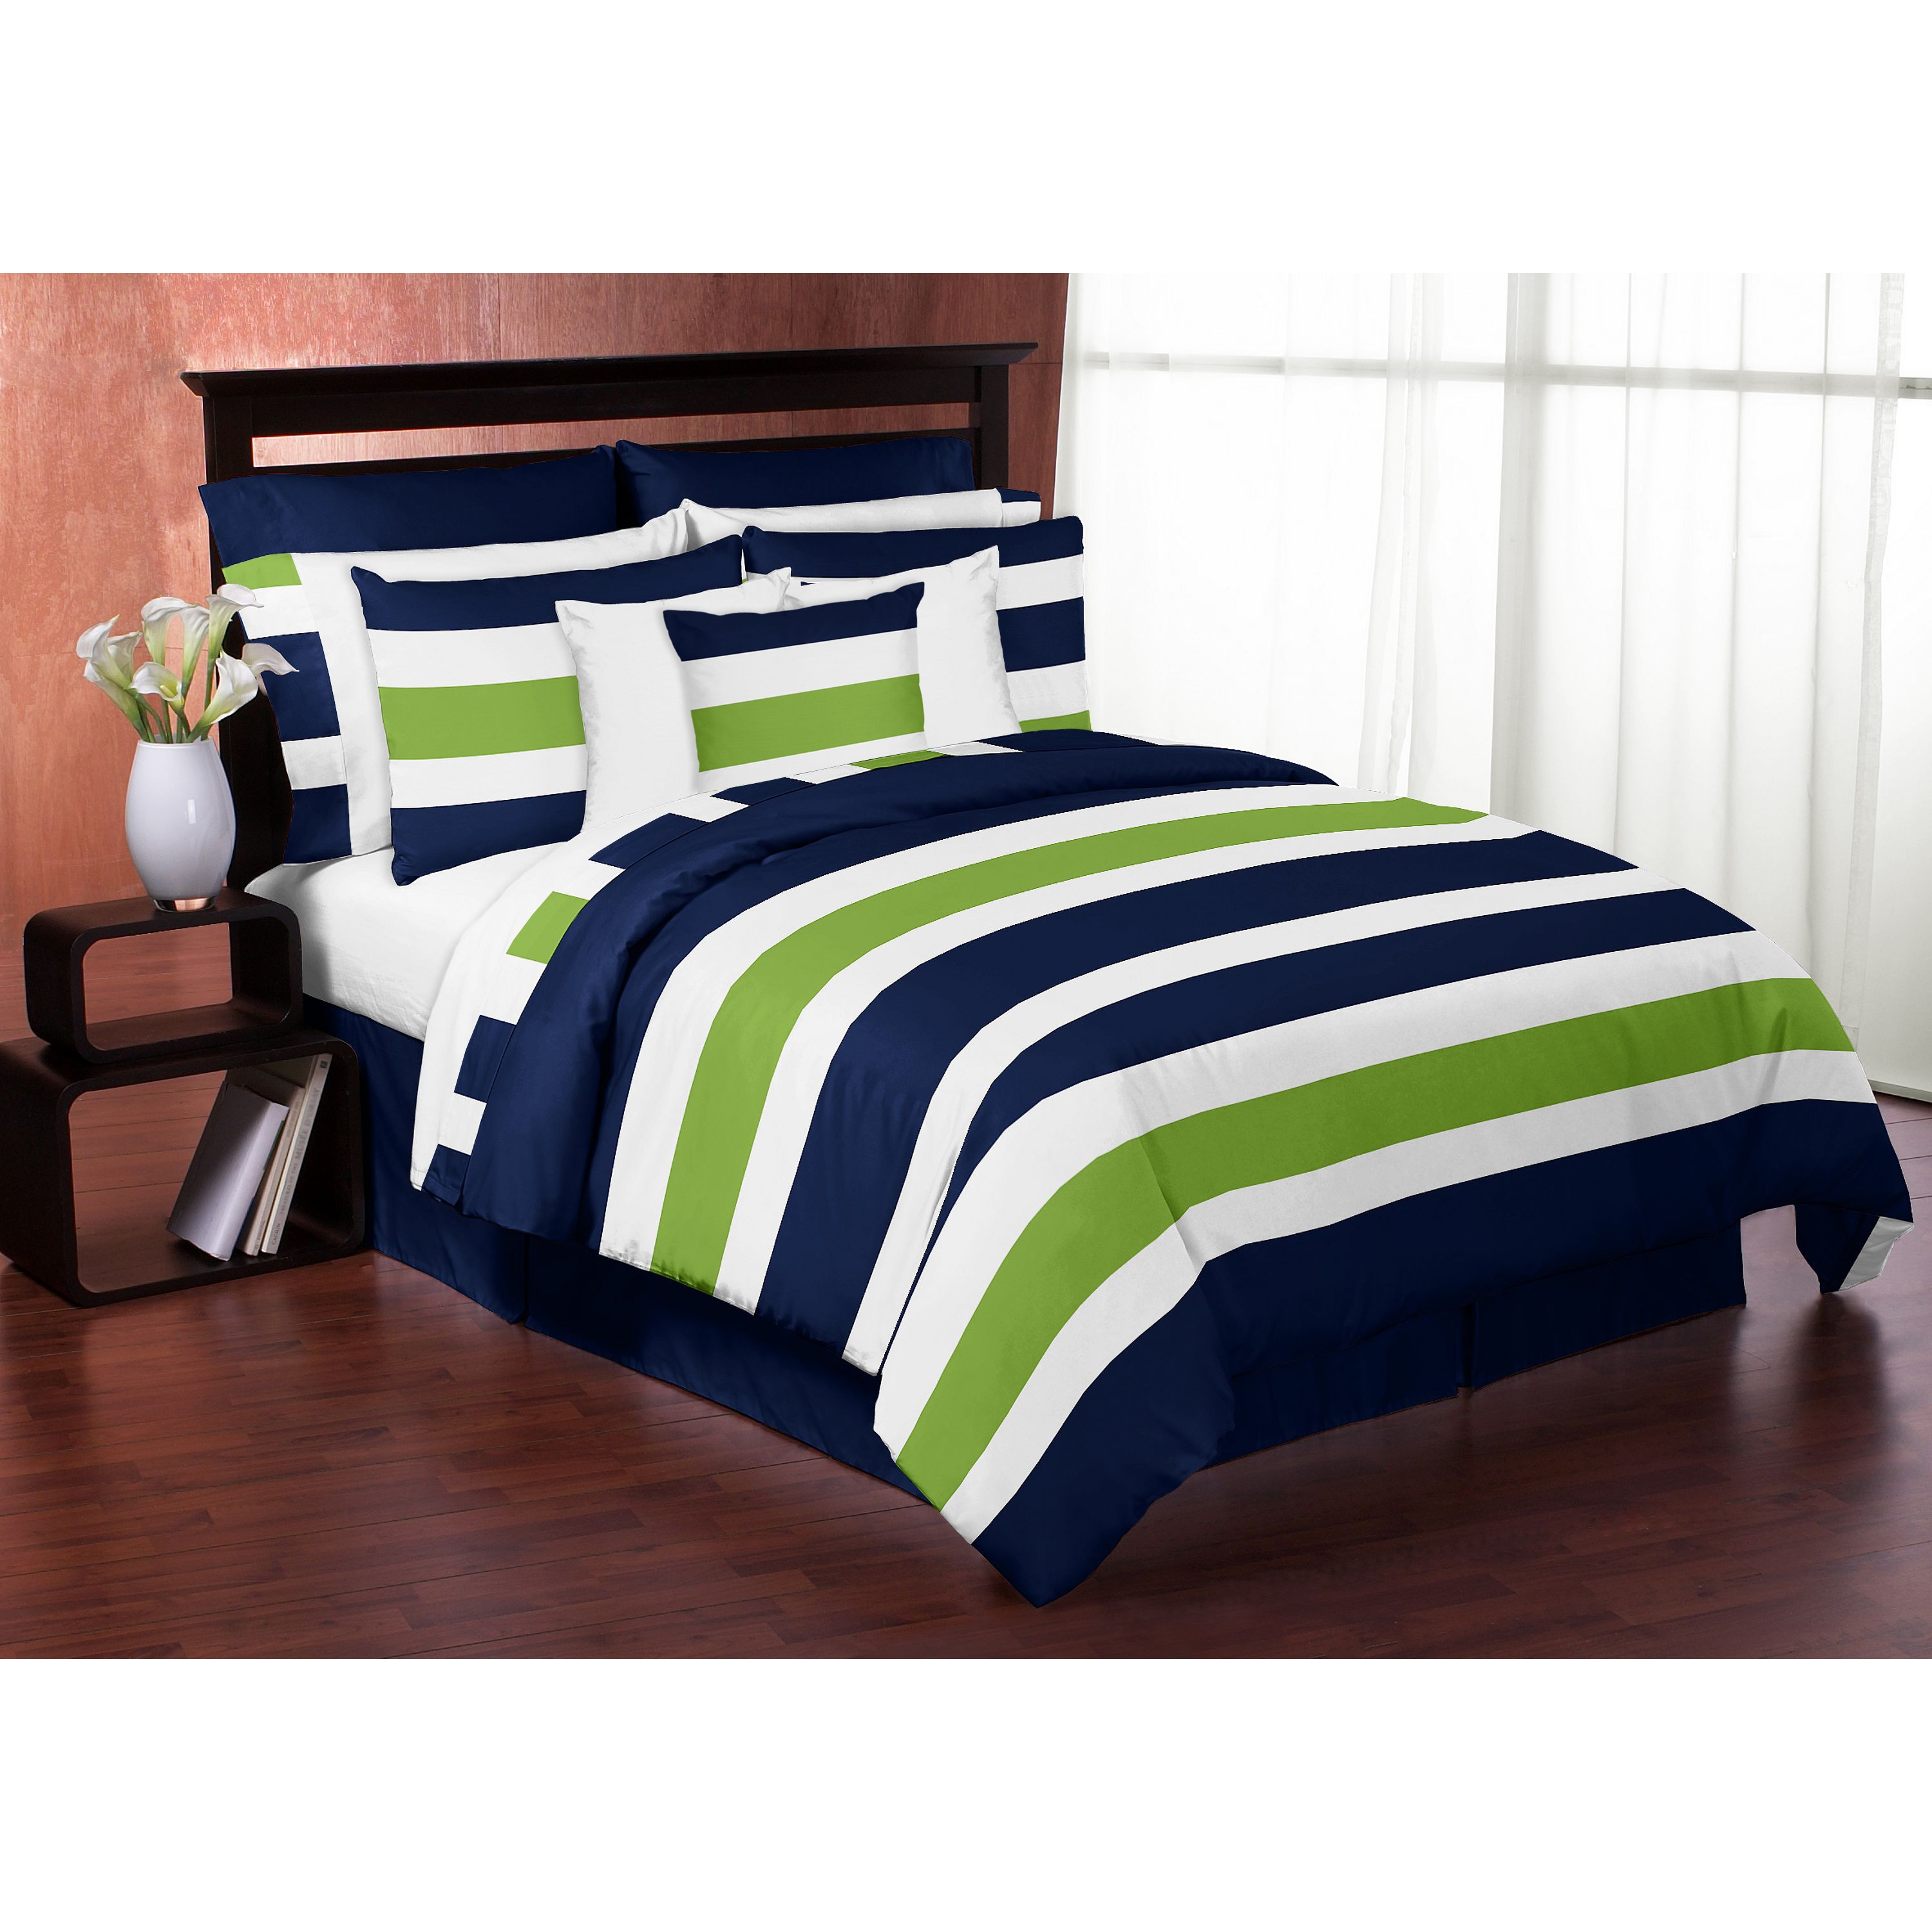 . Navy and Lime Green on White Stripe Full Queen 3 piece Comforter Set